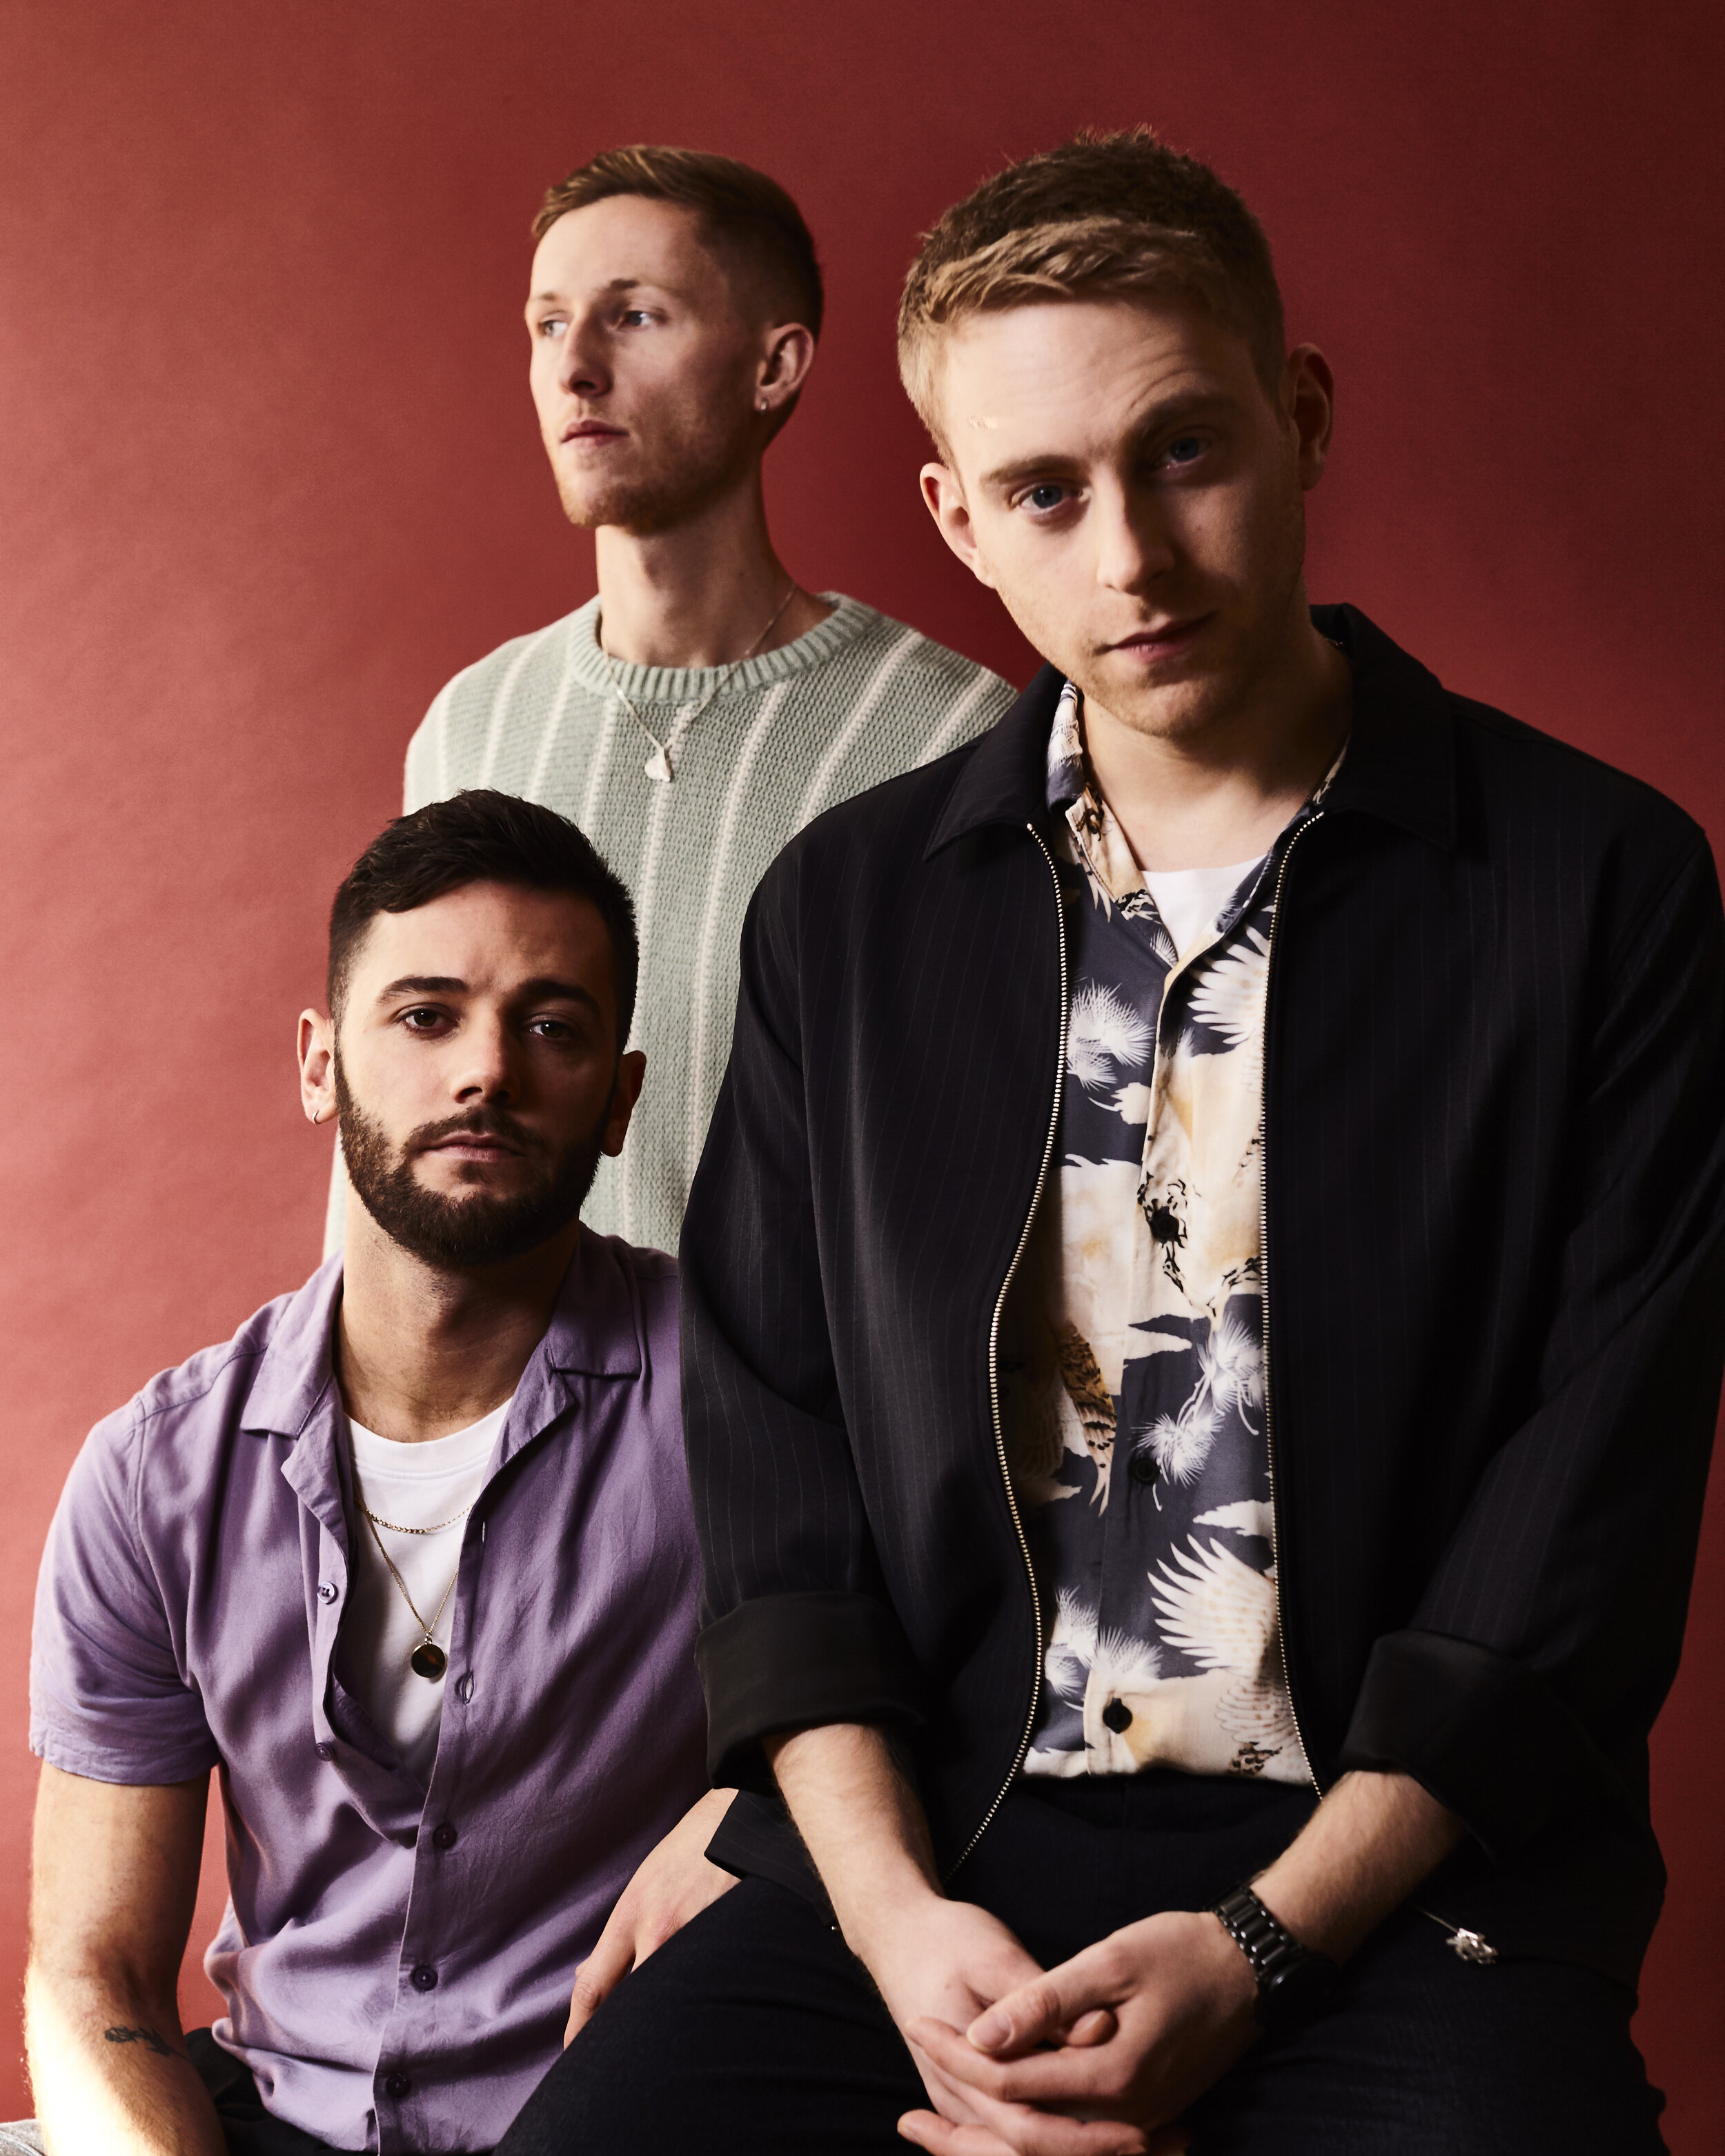 UK trio Flawes releases their debut album highlights